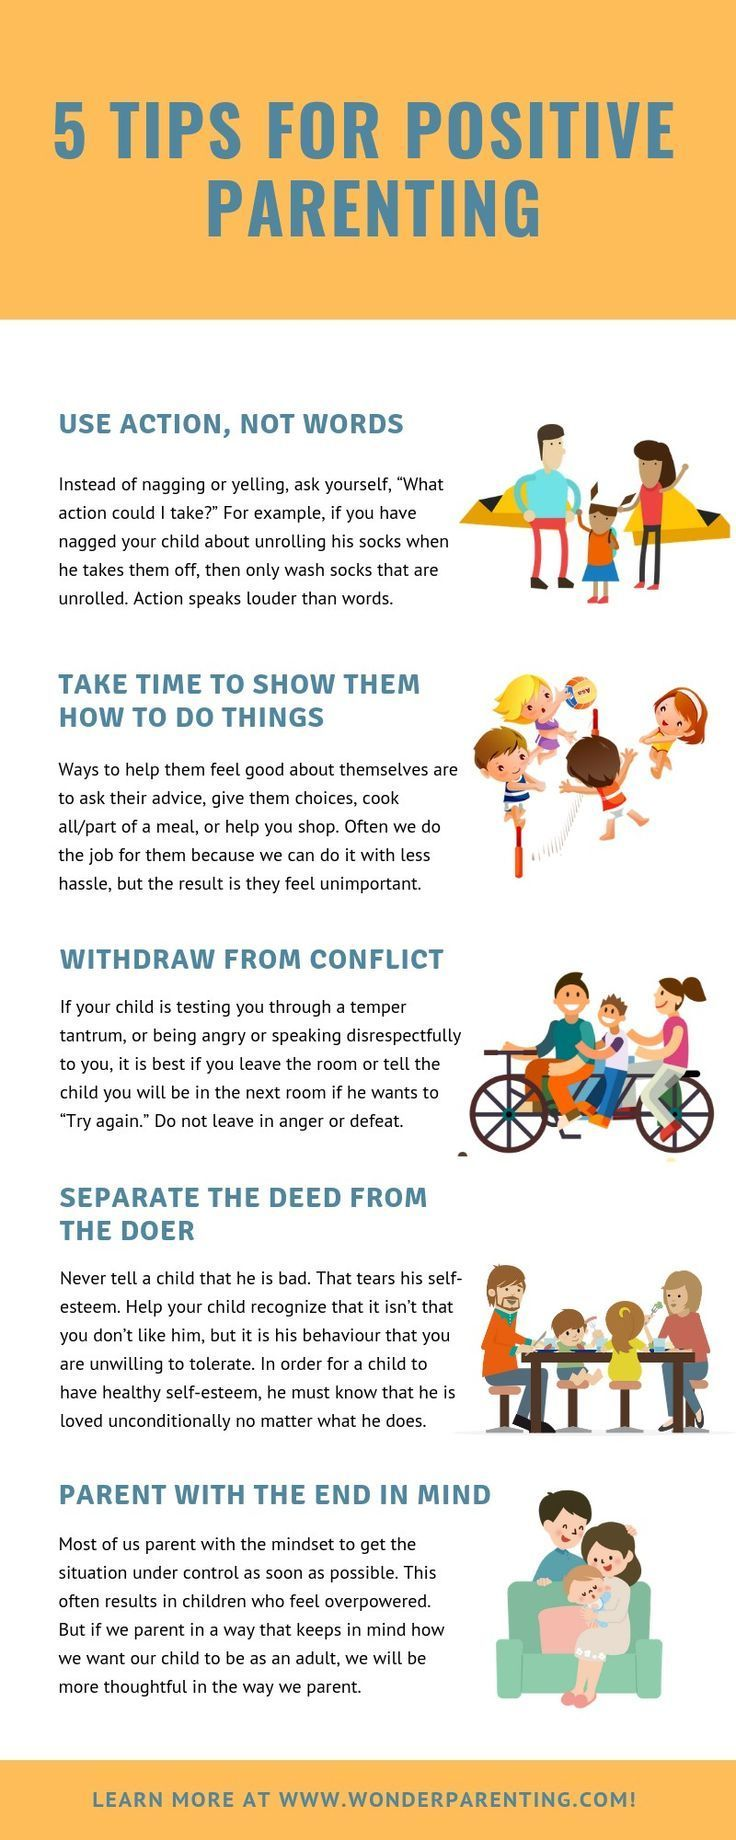 Here are the 5 essential tips for positive parenting. ❤️